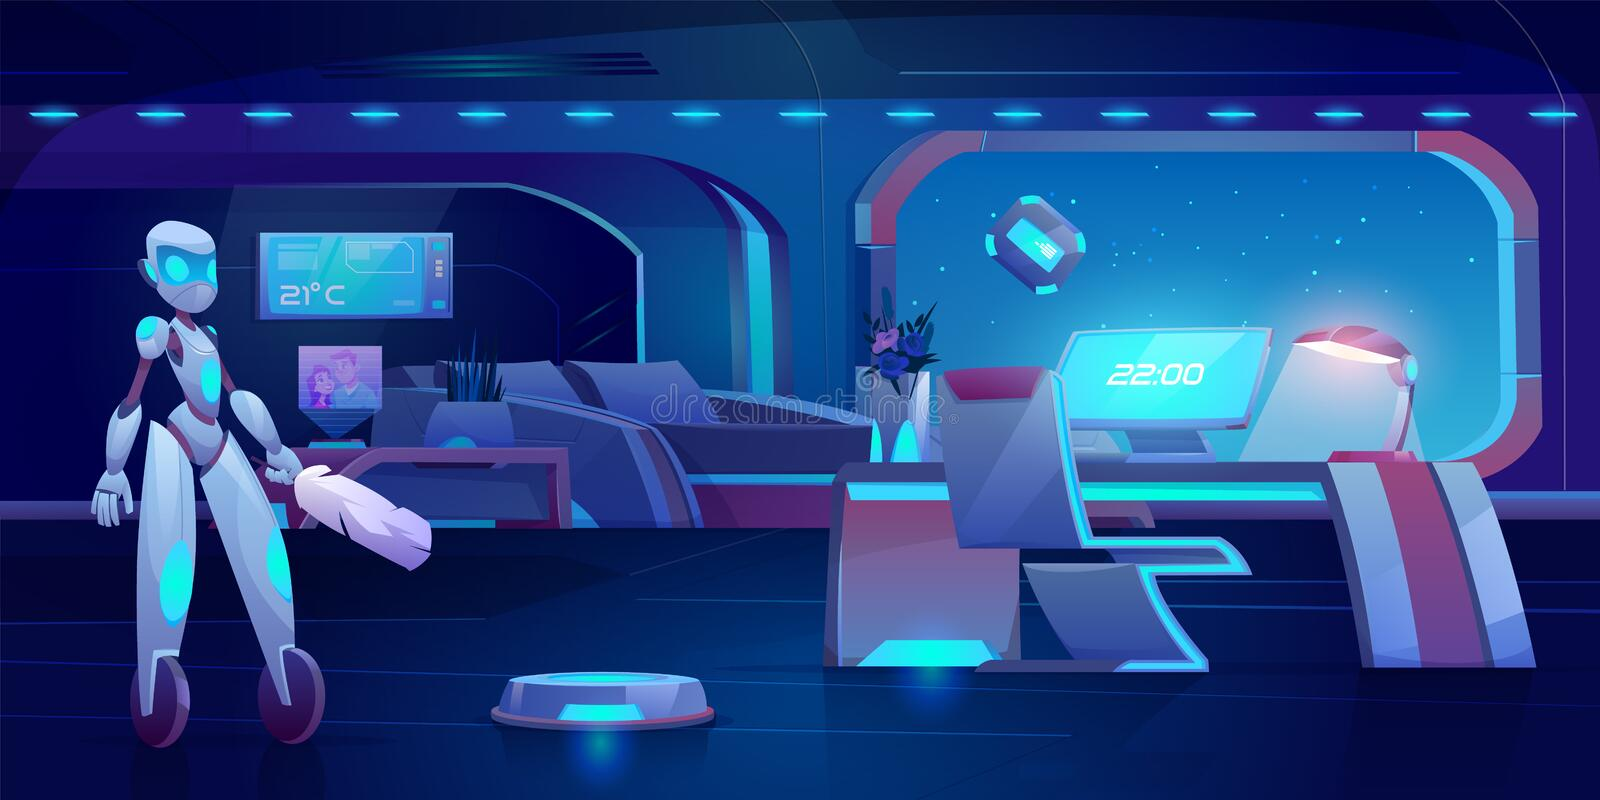 Robot assistant automatic vacuum window cleaner. Robot assistant, automatic vacuum and window cleaner in futuristic bedroom with neon glowing furniture at night royalty free illustration